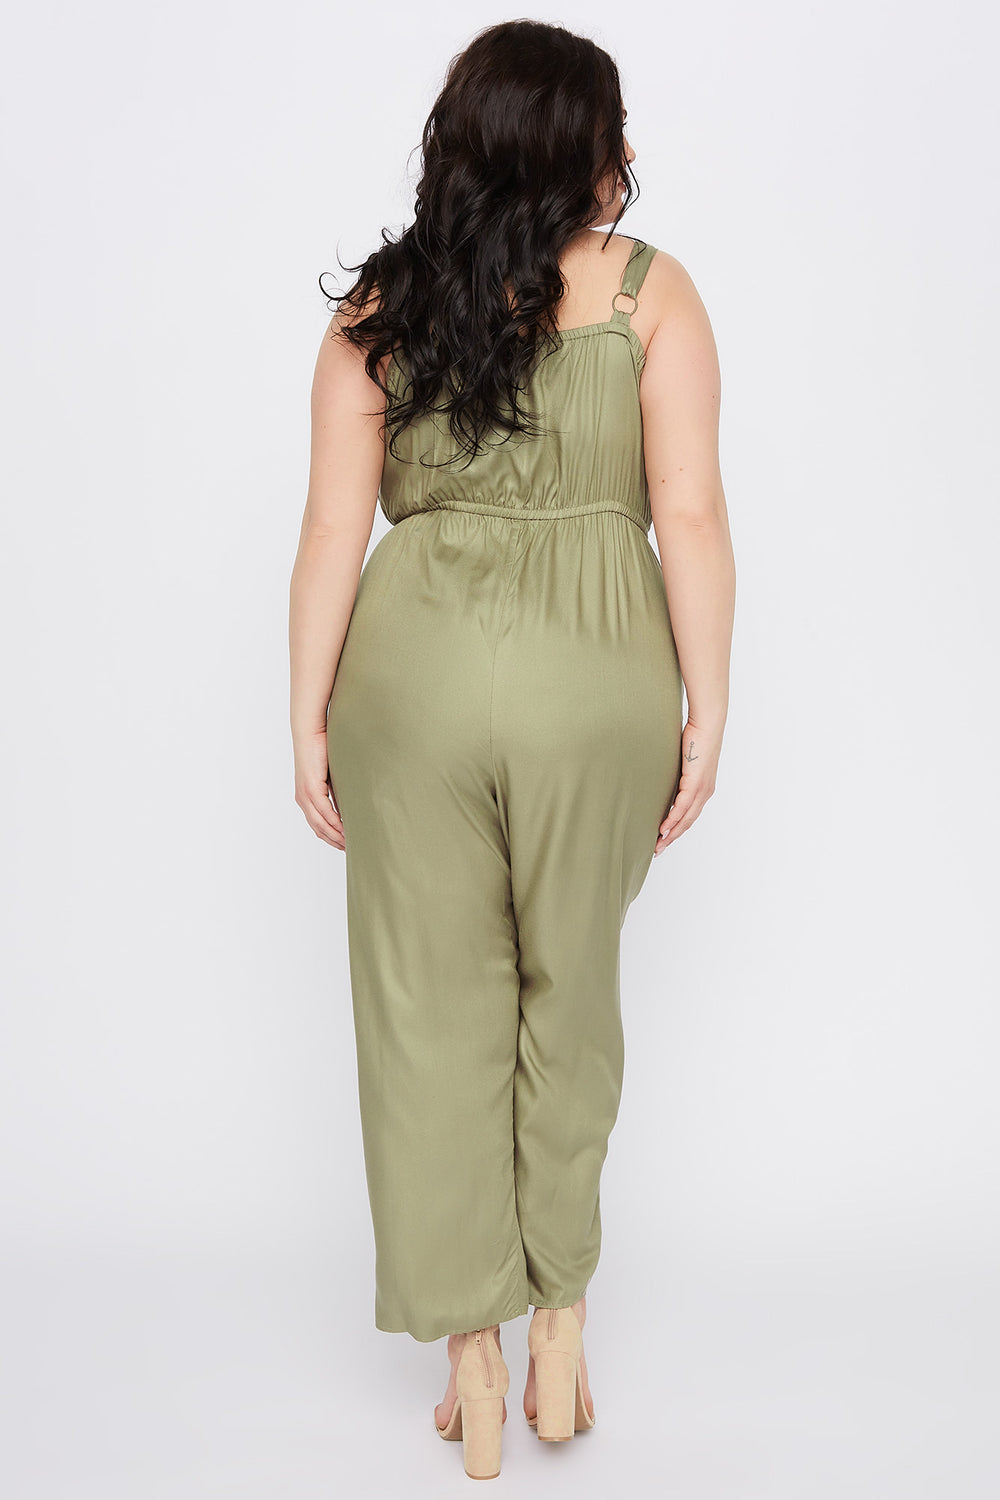 Plus Size Sleeveless Button Jumpsuit Dark Green